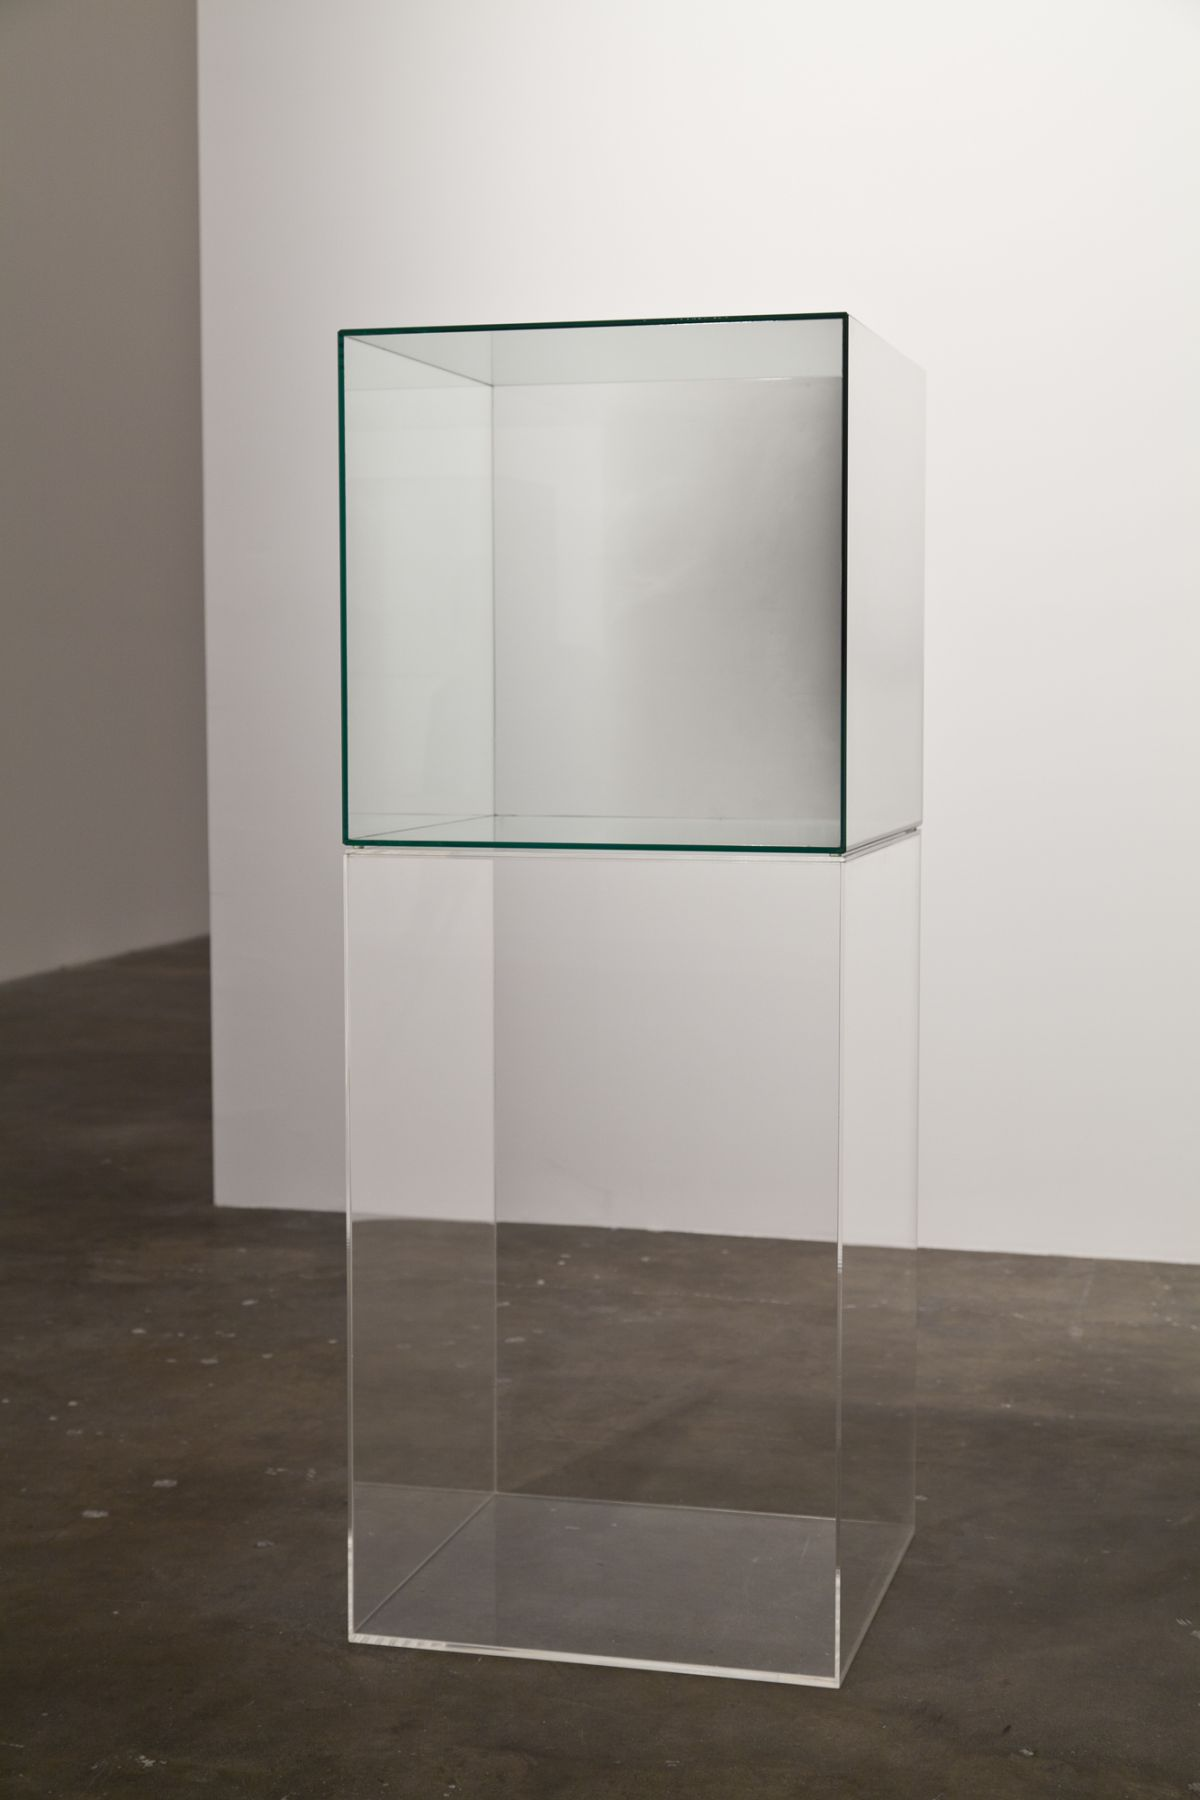 Larry Bell, Cube #22